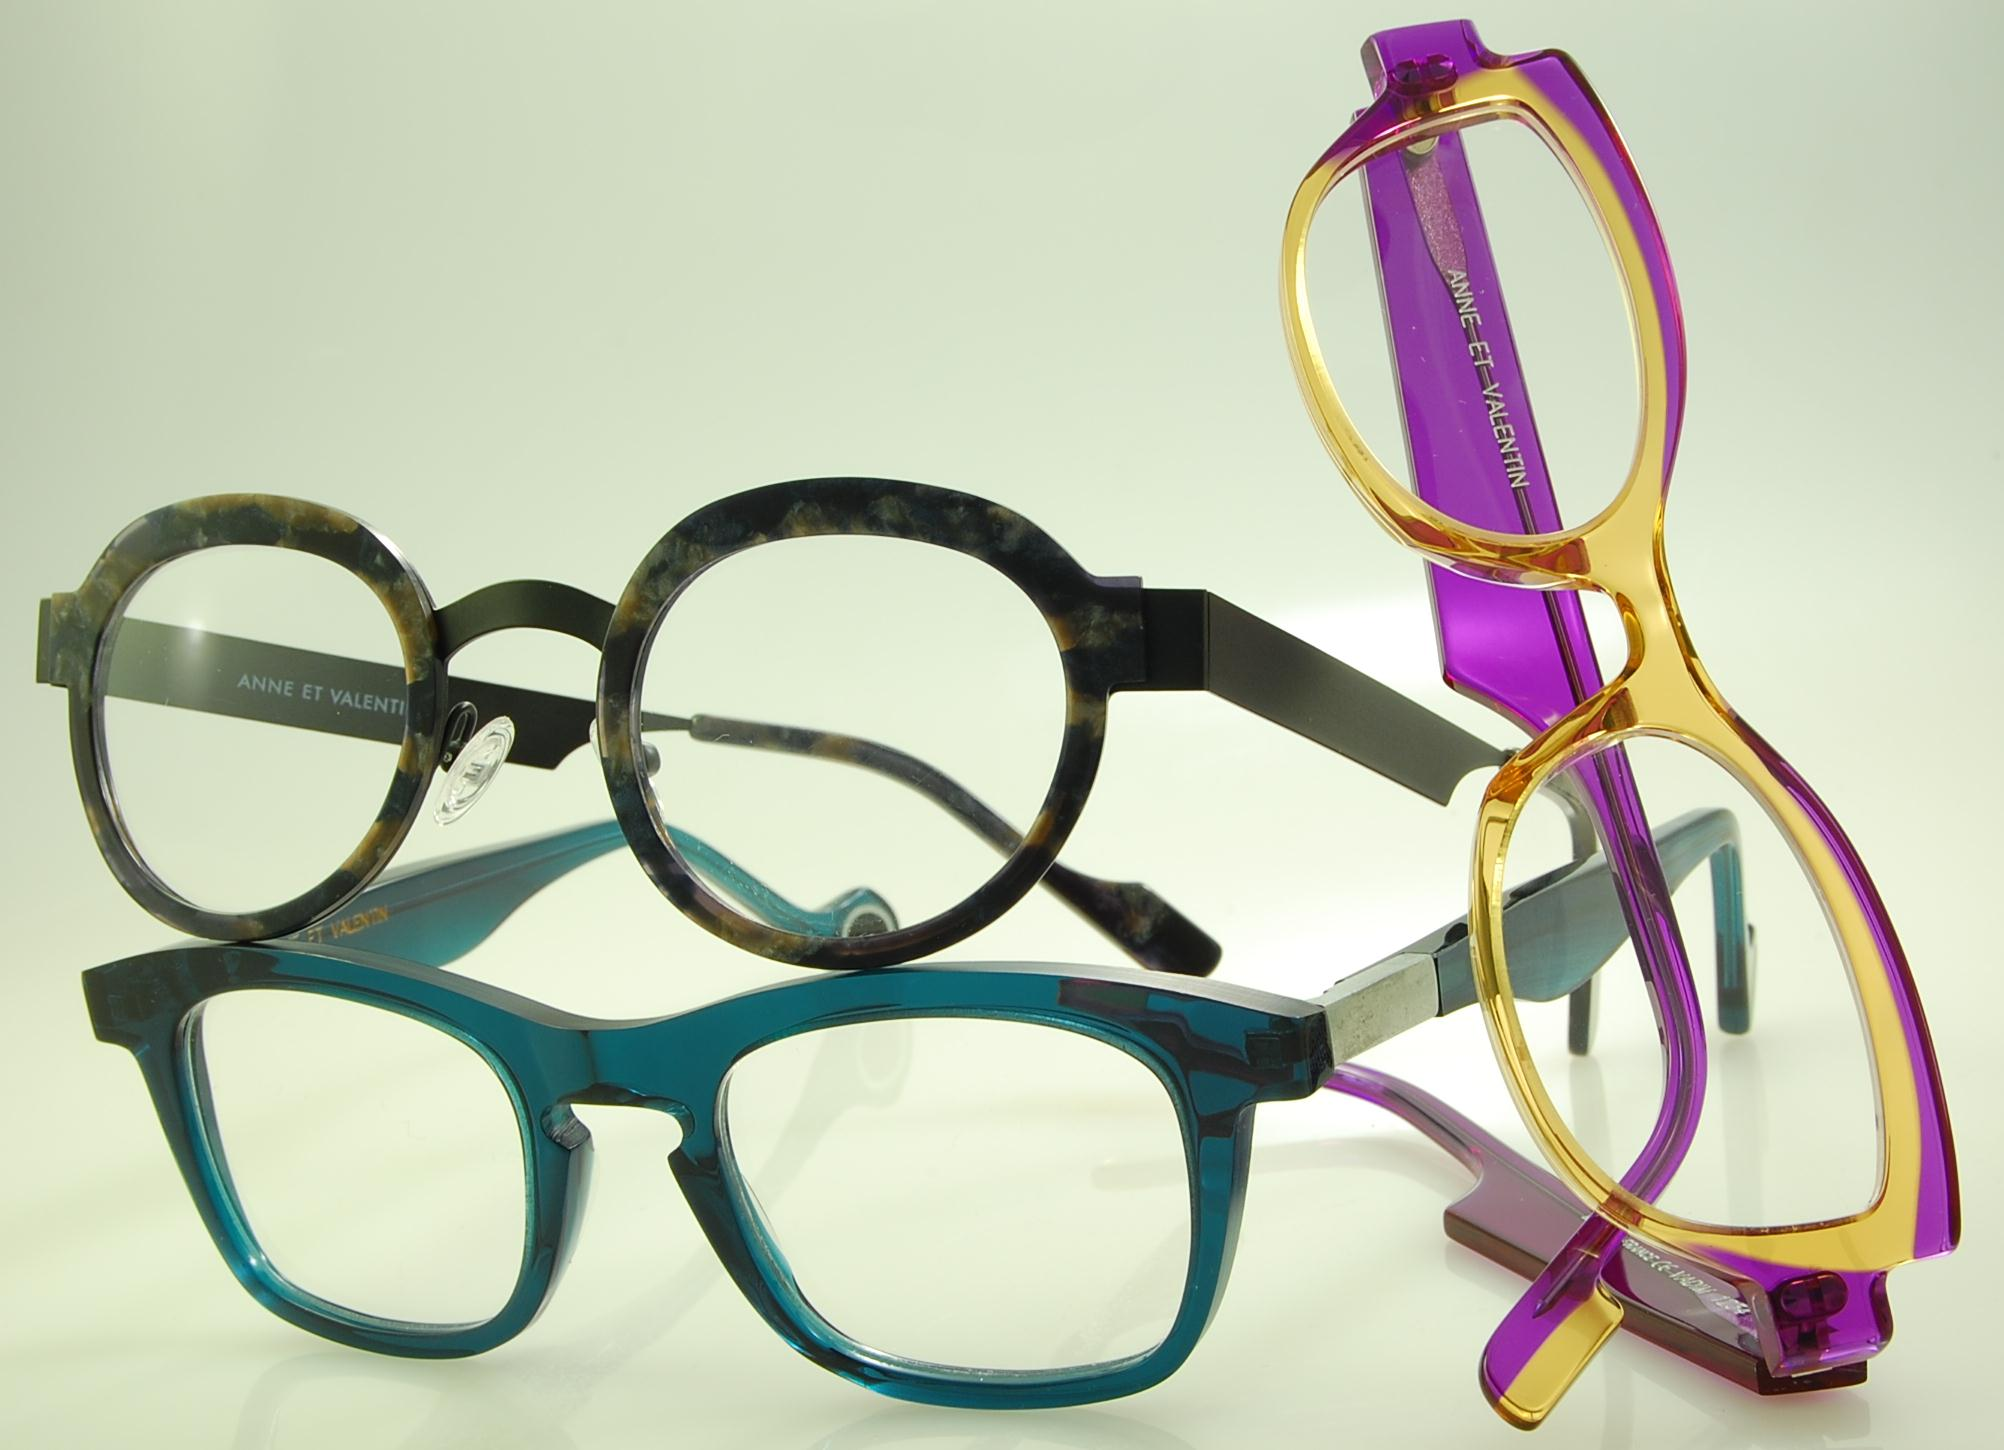 Anne et Valentin luxury eye glasses.